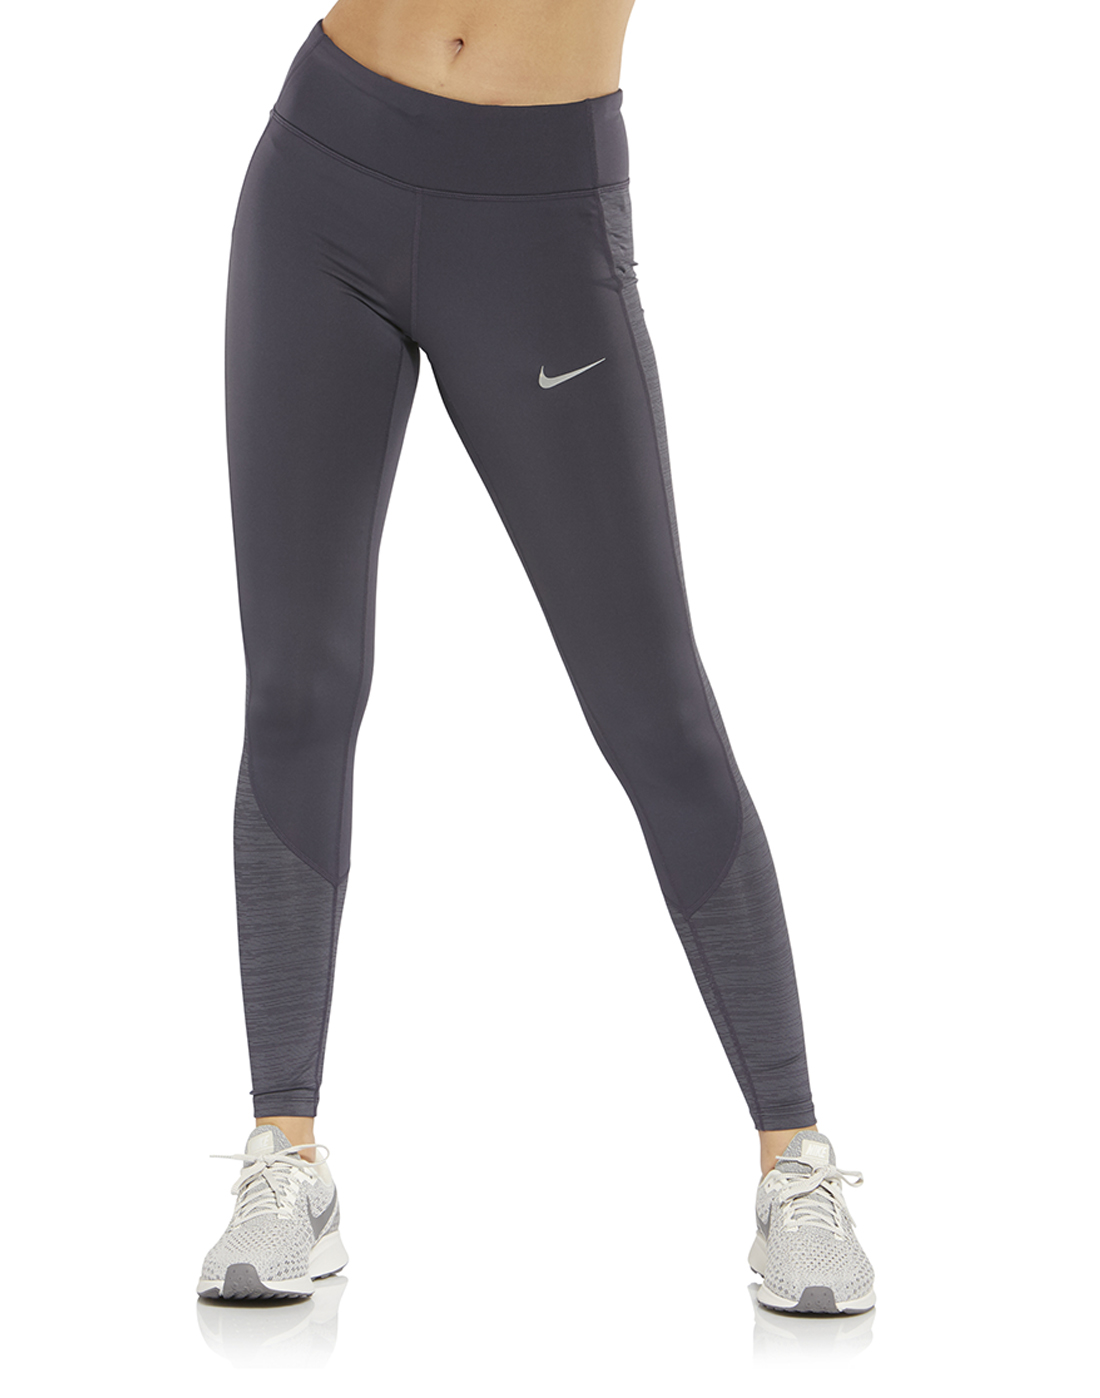 b39f89bab3e0f Women's Grey Nike Running Tights | Life Style Sports